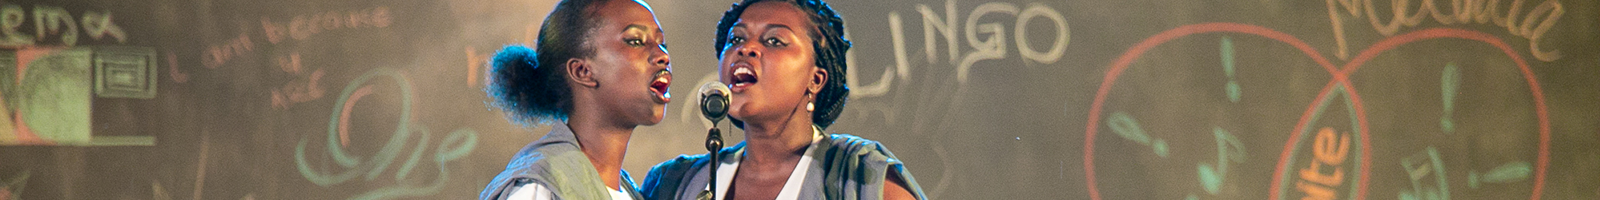 Two women singing at the Ubumuntu Arts Festival in Kigali